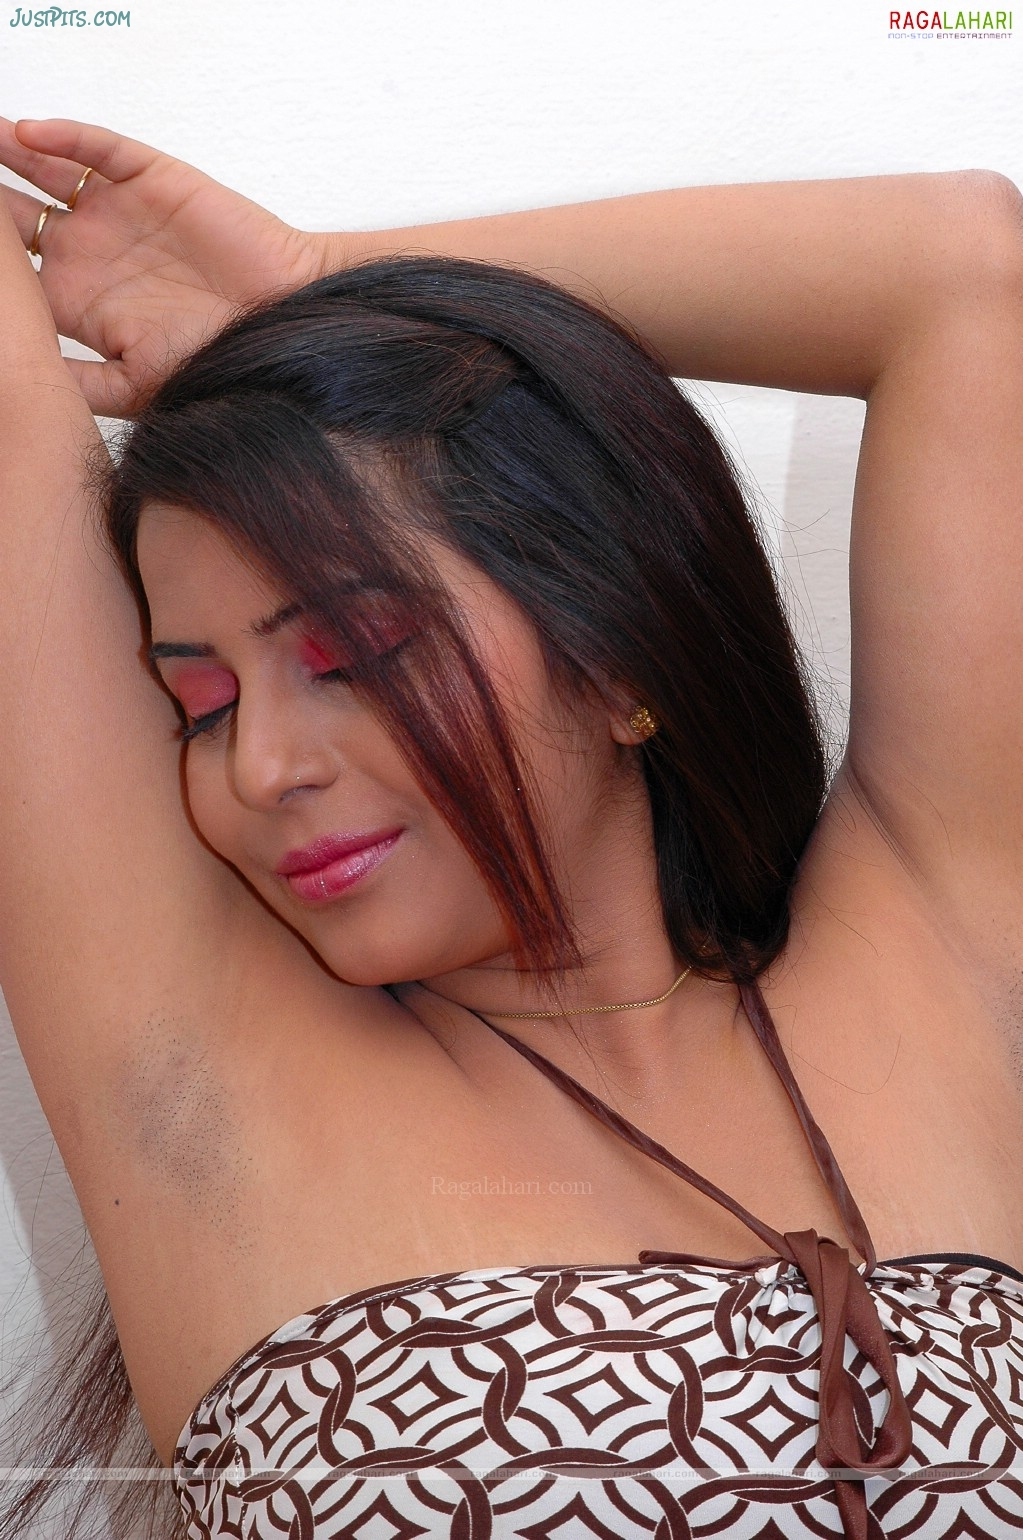 hairy armpit indian nude